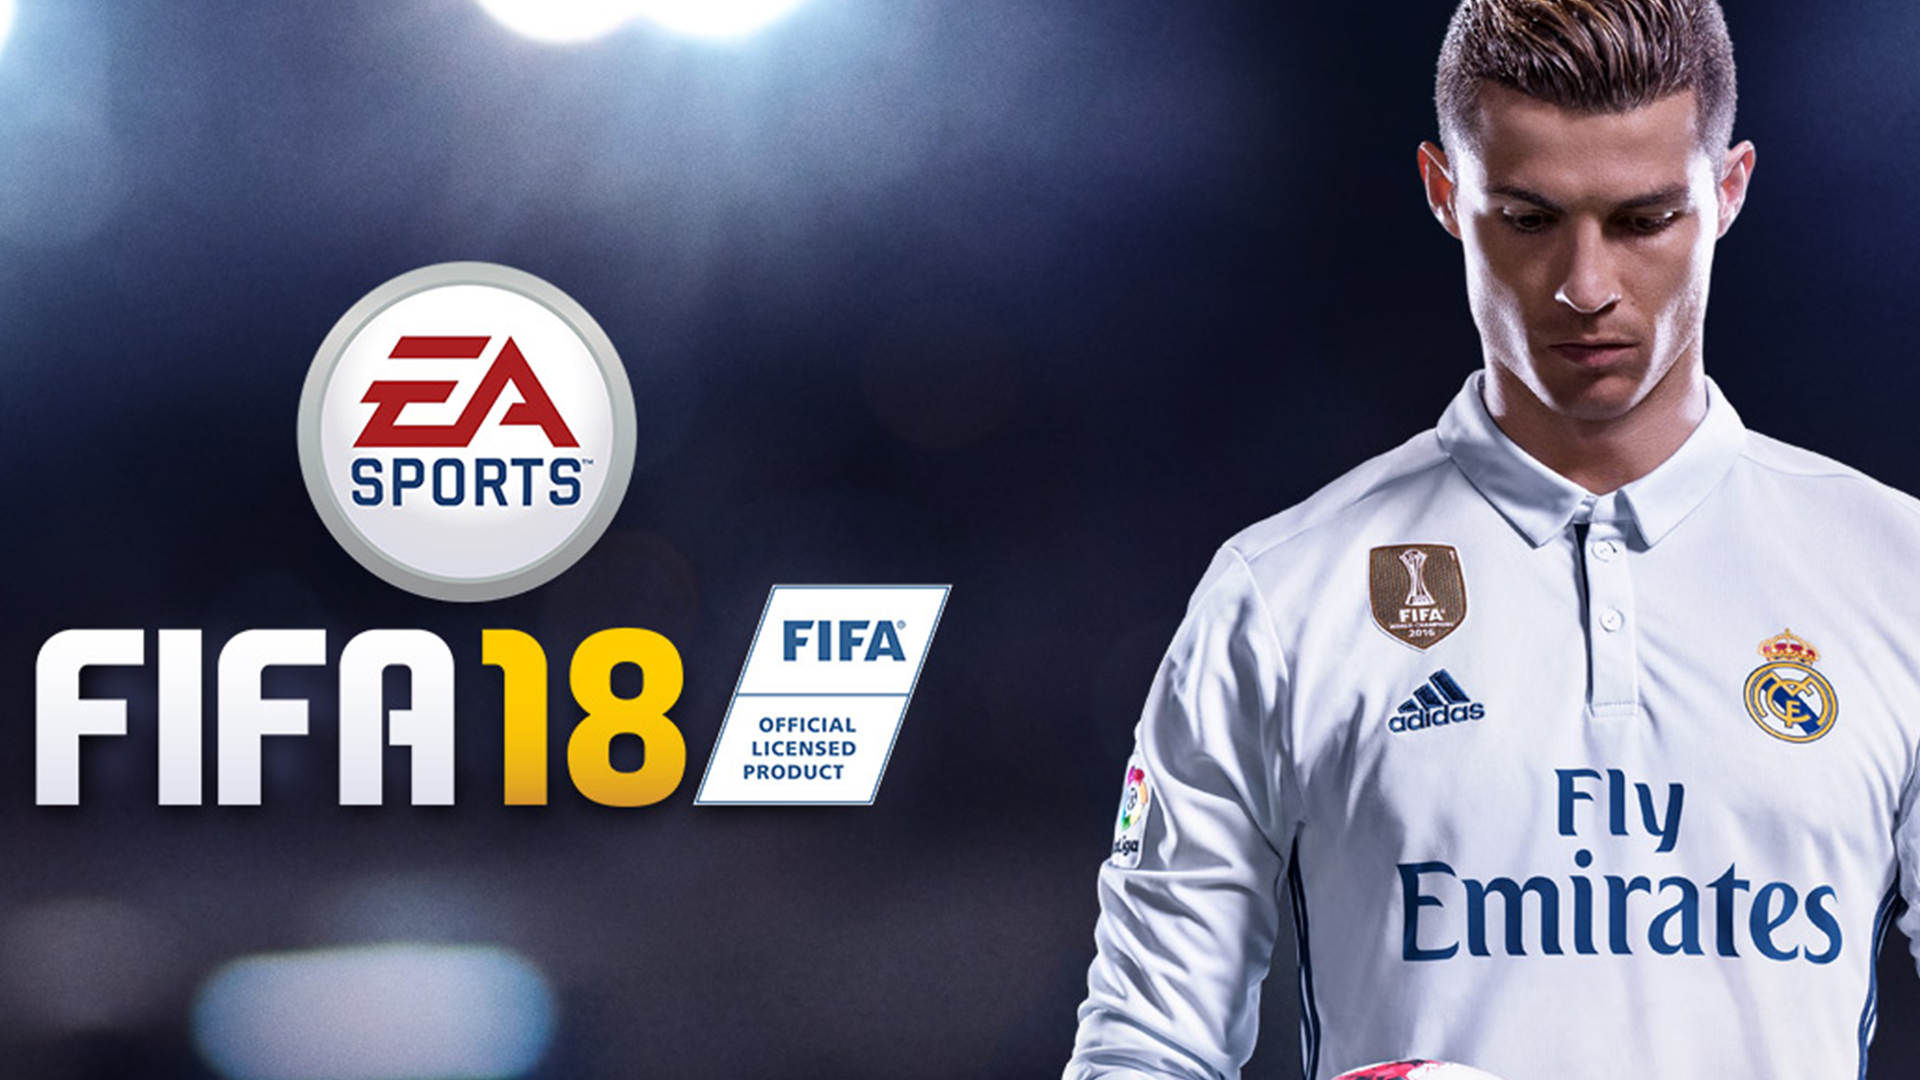 FIFA 18 Demo Now Available On Xbox One PS4 And PC 1920x1080